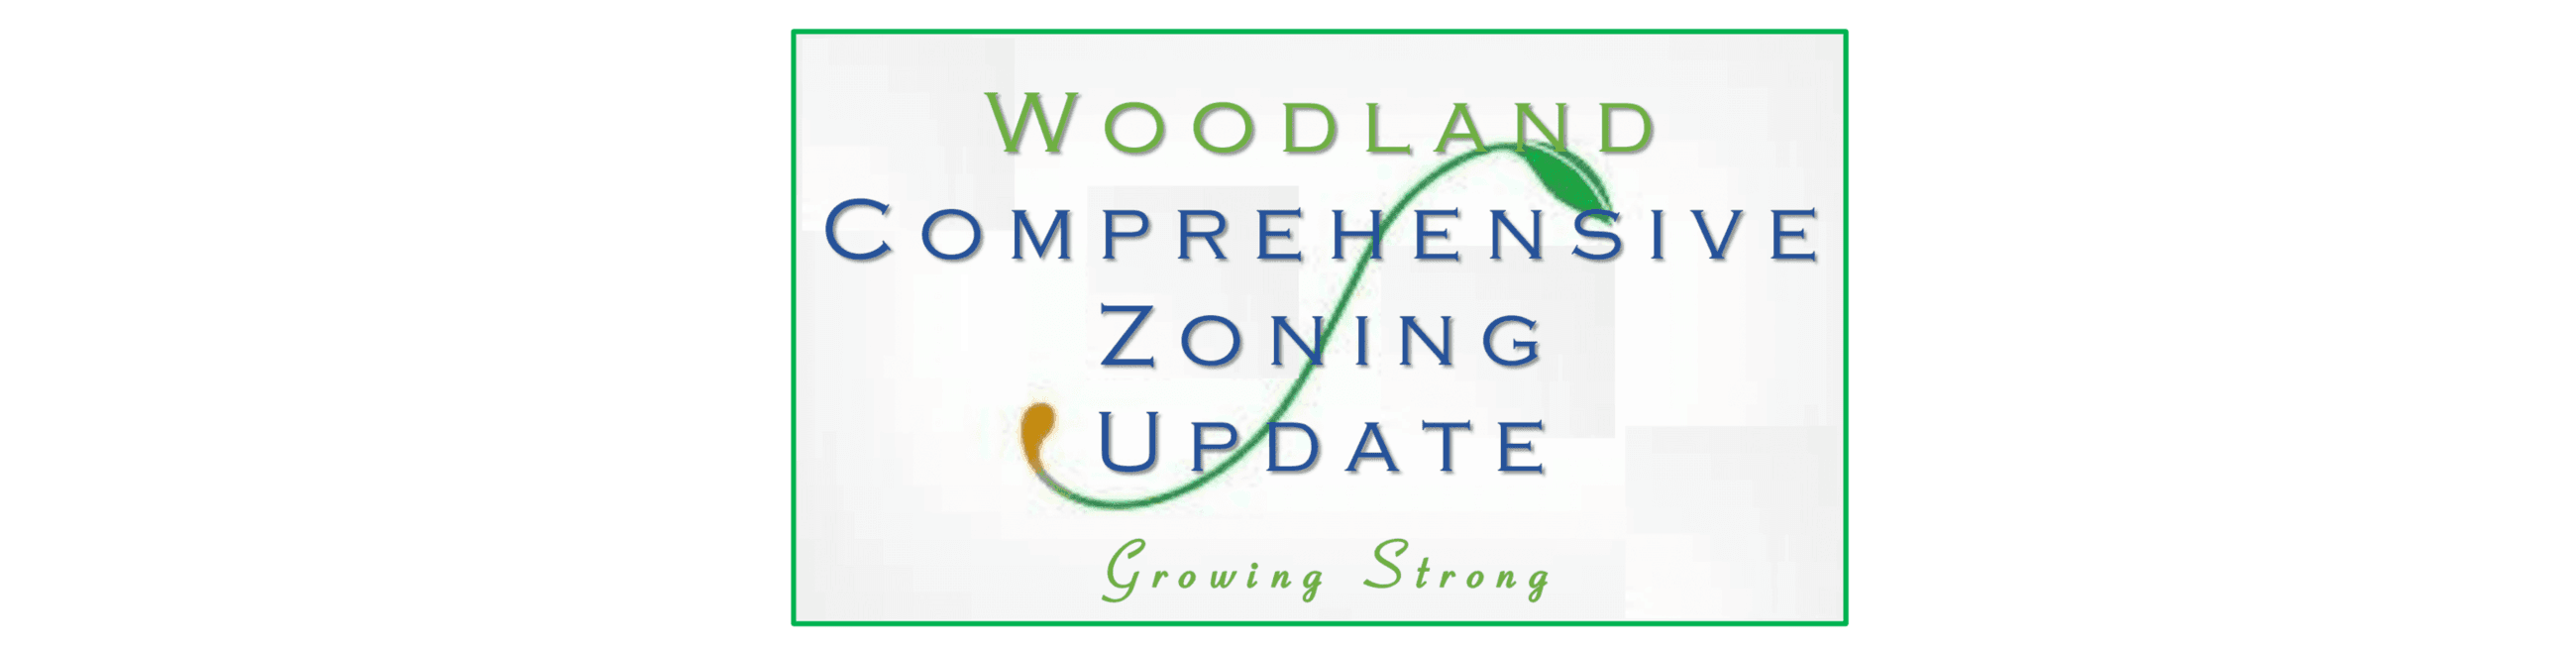 Comprehensive Zoning Update Logo PNG